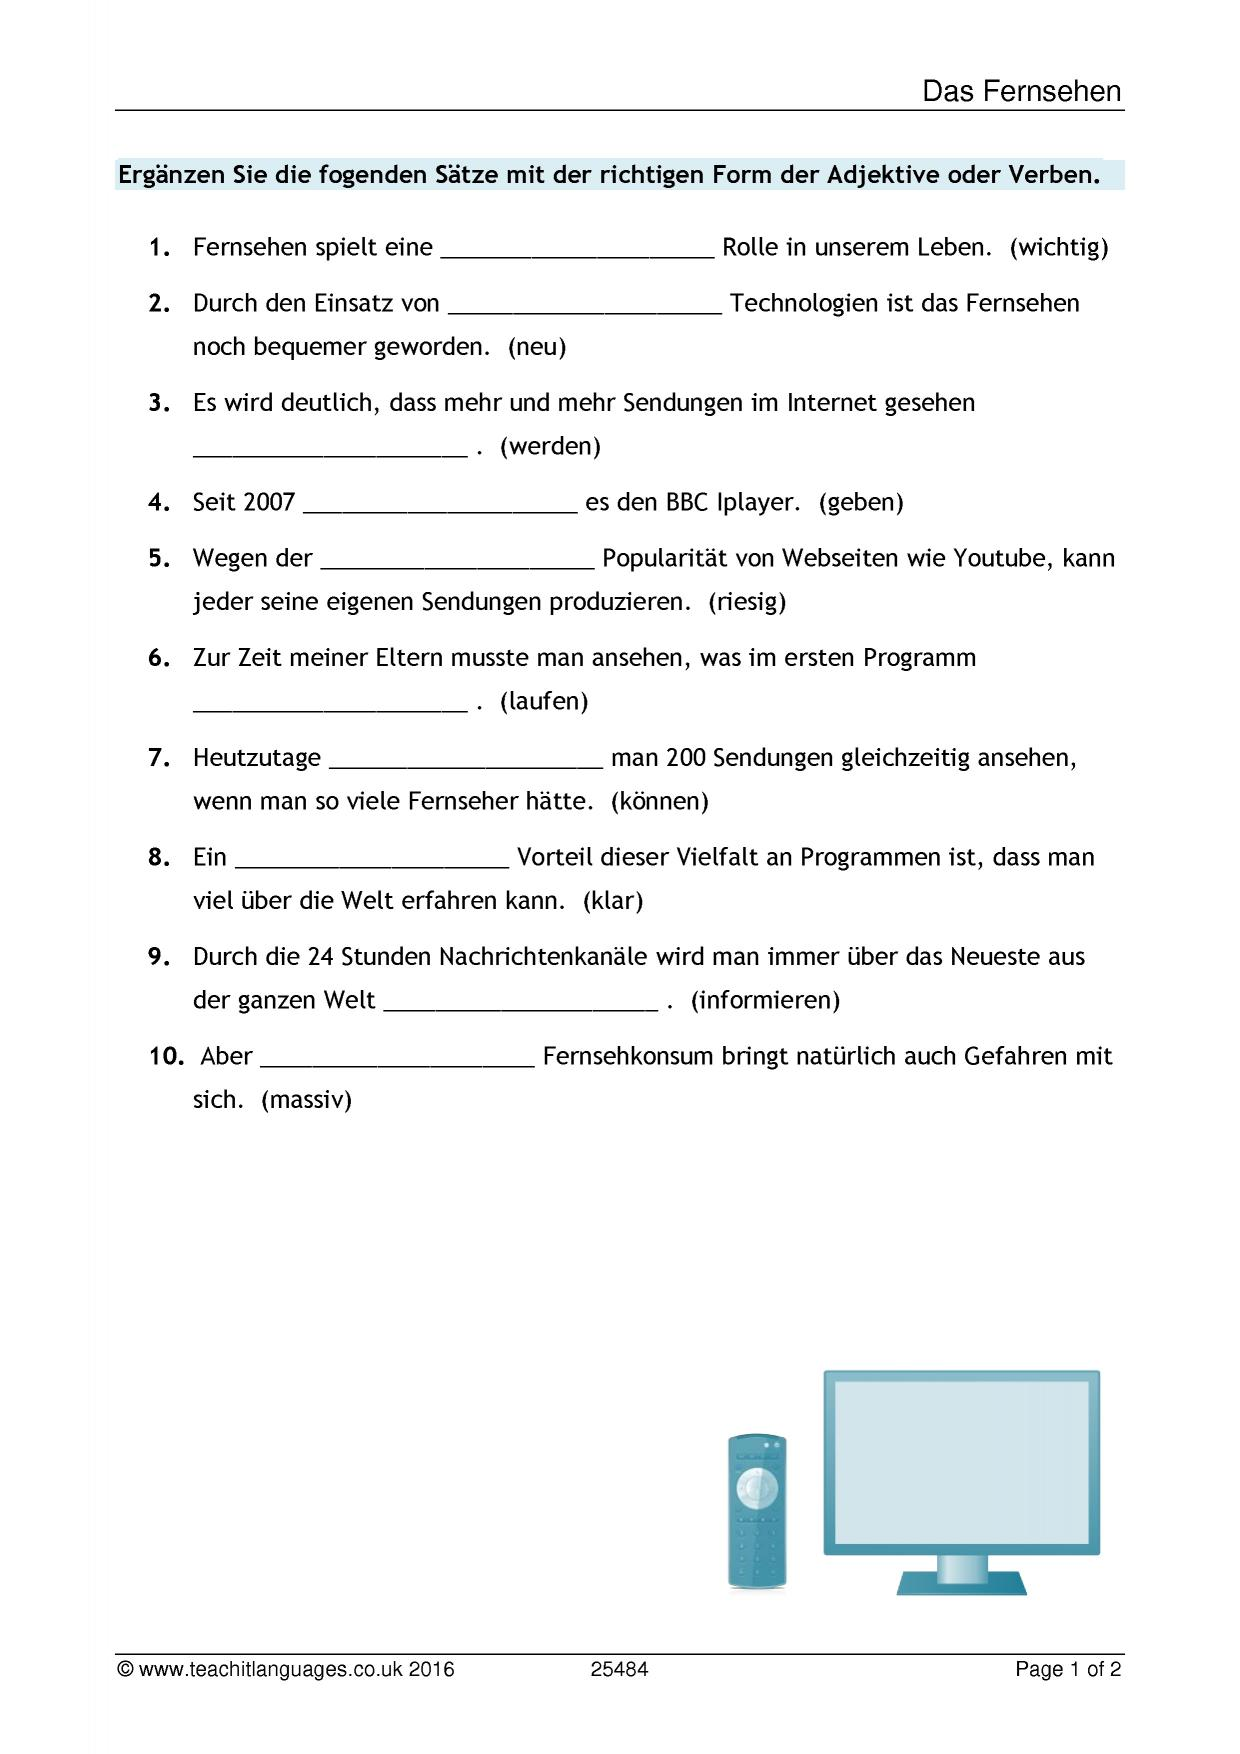 German Language Teaching Resources